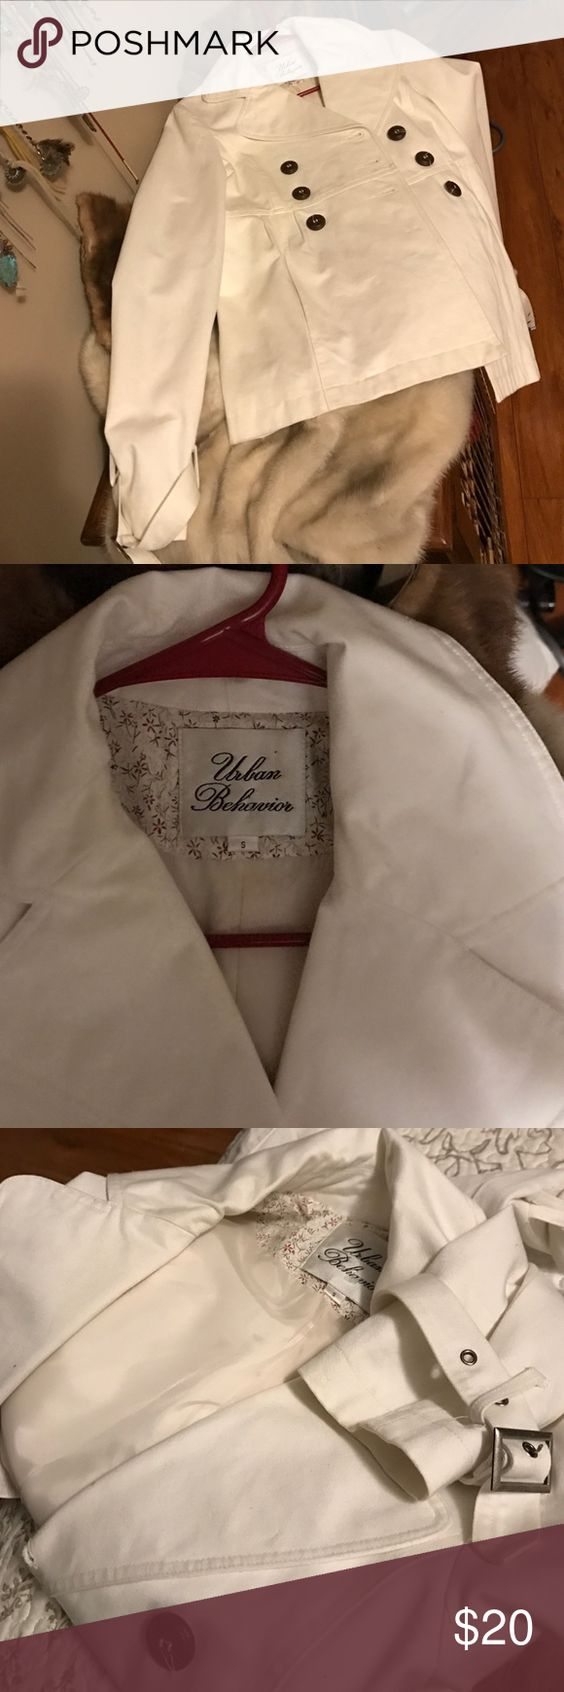 urban behavior peacoat white small lines jacket urban behavior peacoat white small lines jacket see pics or feel to ask questions jackets